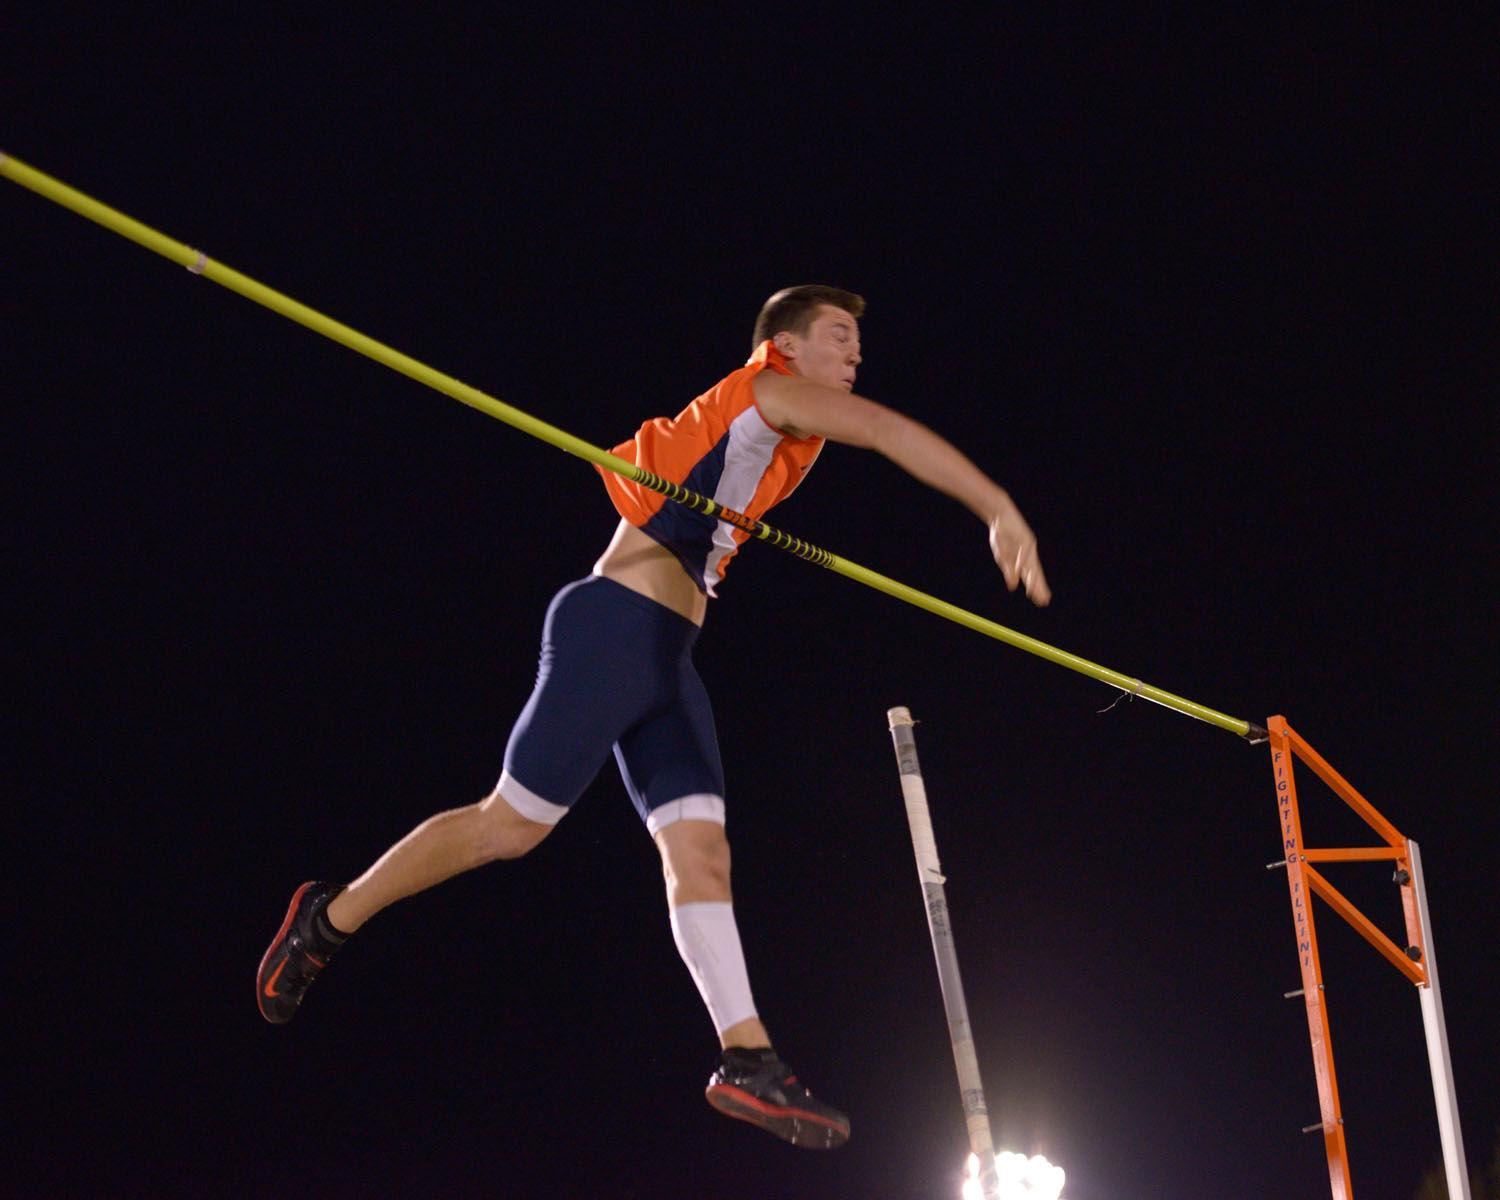 Illinois' Mitch Mammoser releases the pole as he swings over the bar during the poll vault event at the Illinois Twilight Meet.